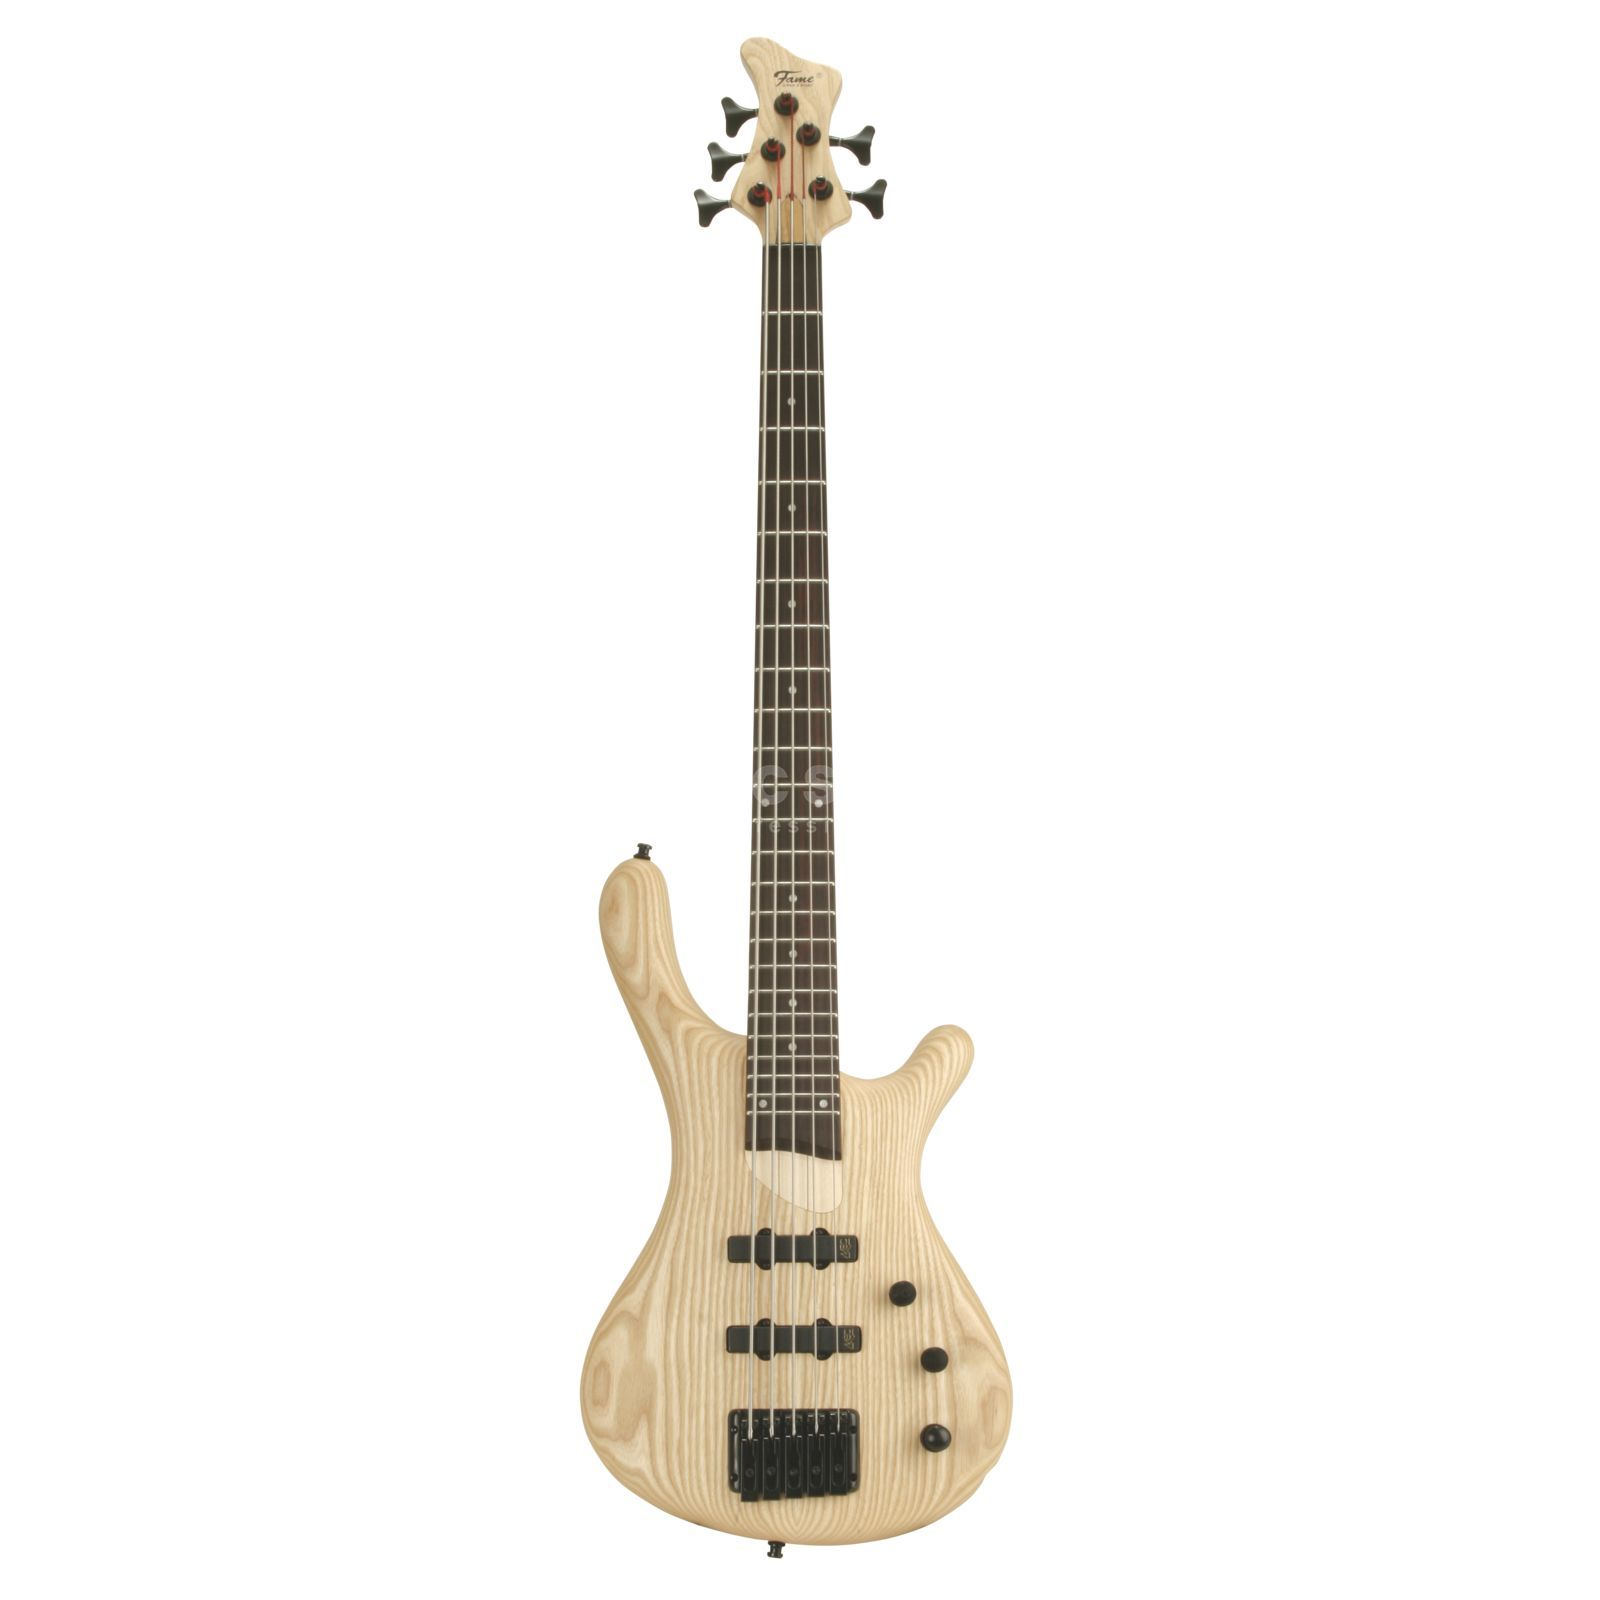 Fame Baphomet Blonde 5, 5-String E- Bass Guitar, Oil Finish Изображение товара